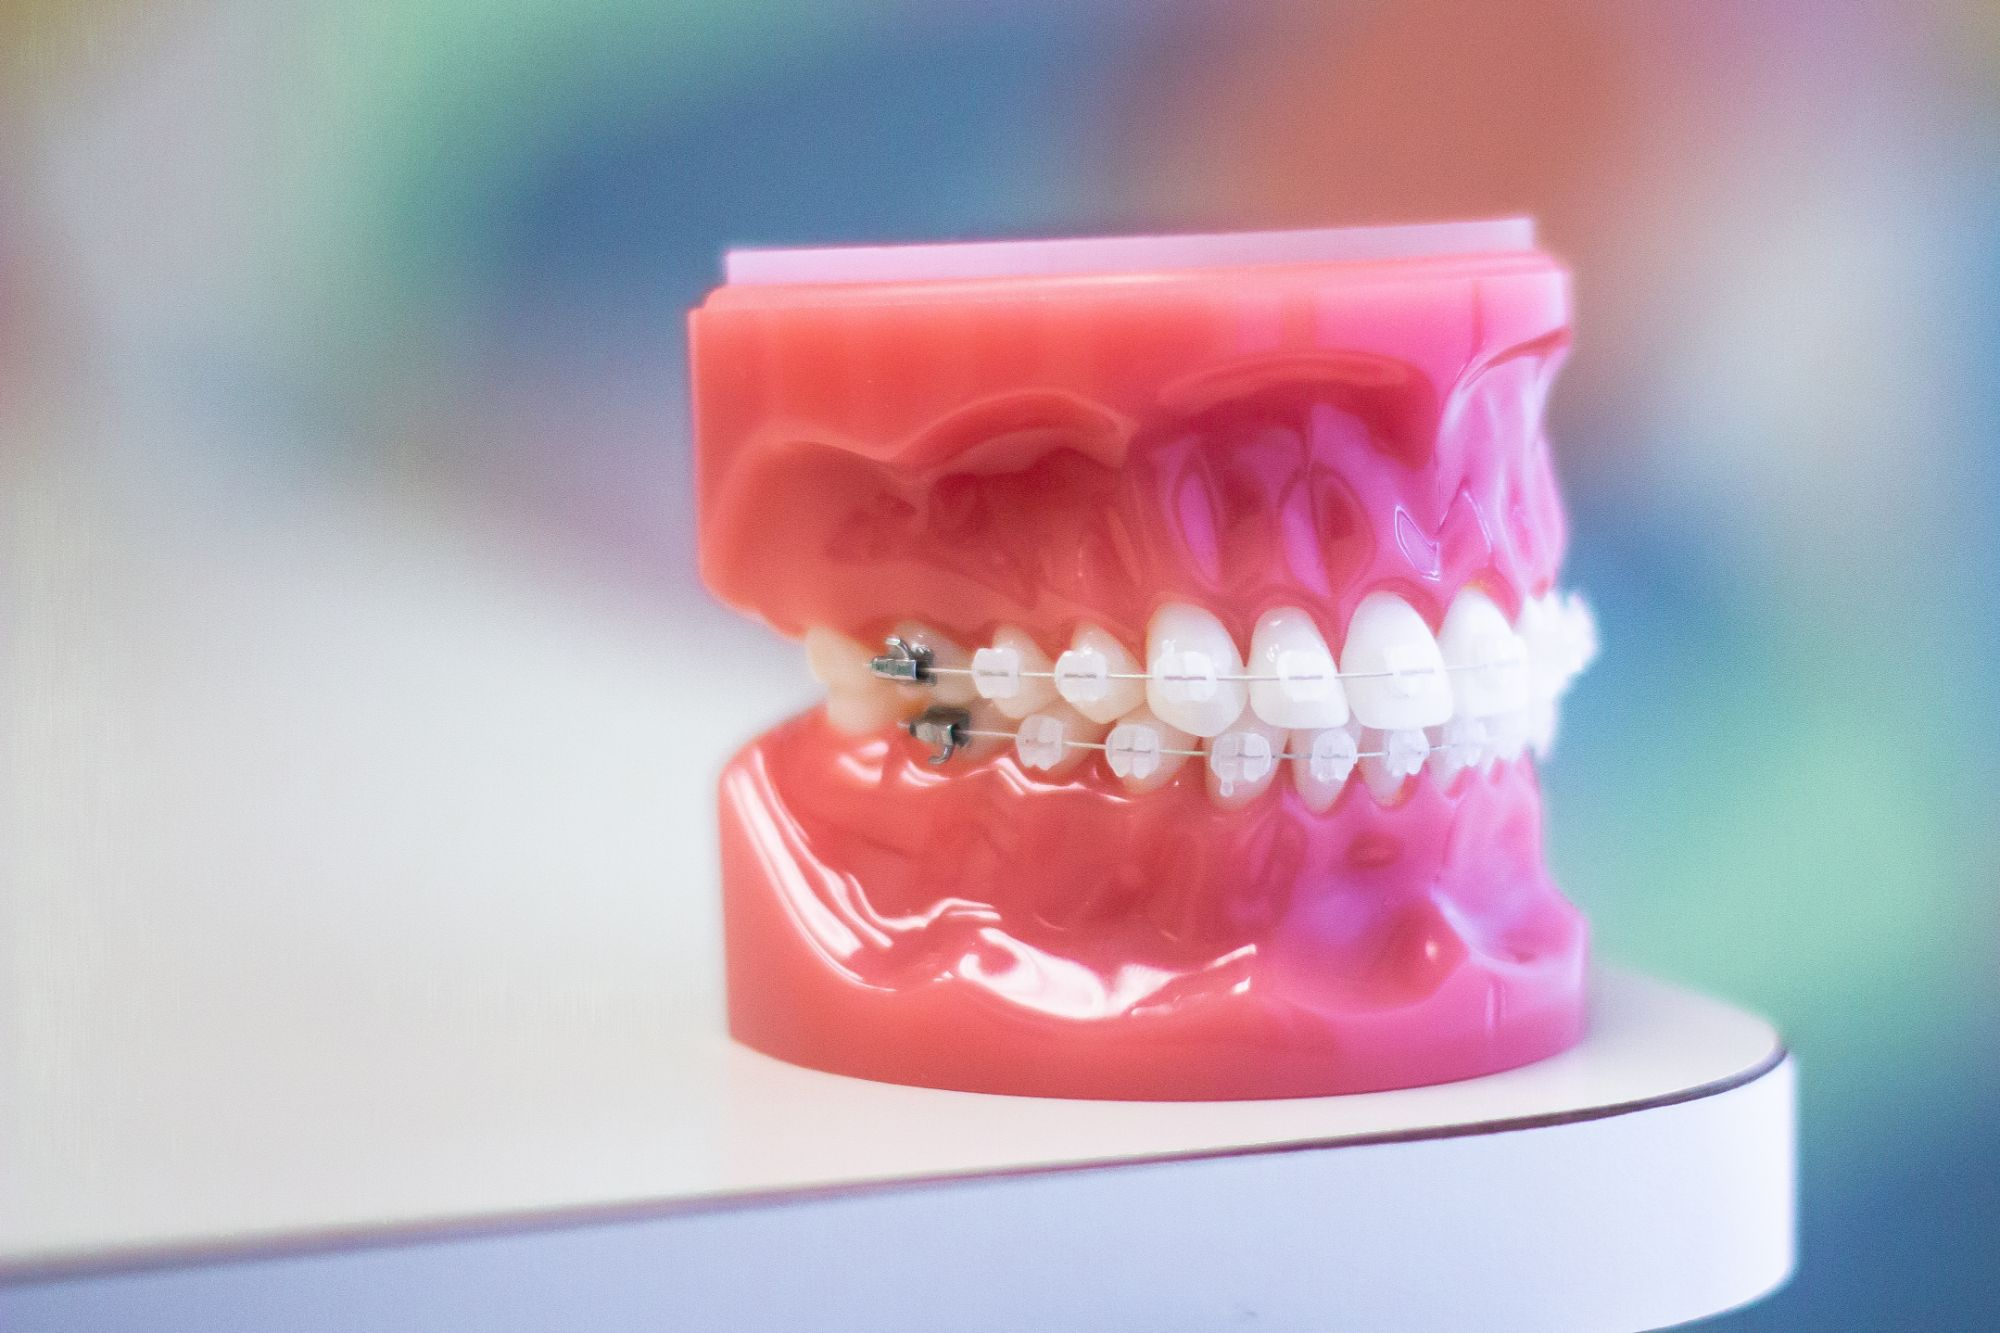 Choose the Best Orthodontist for Your Smile